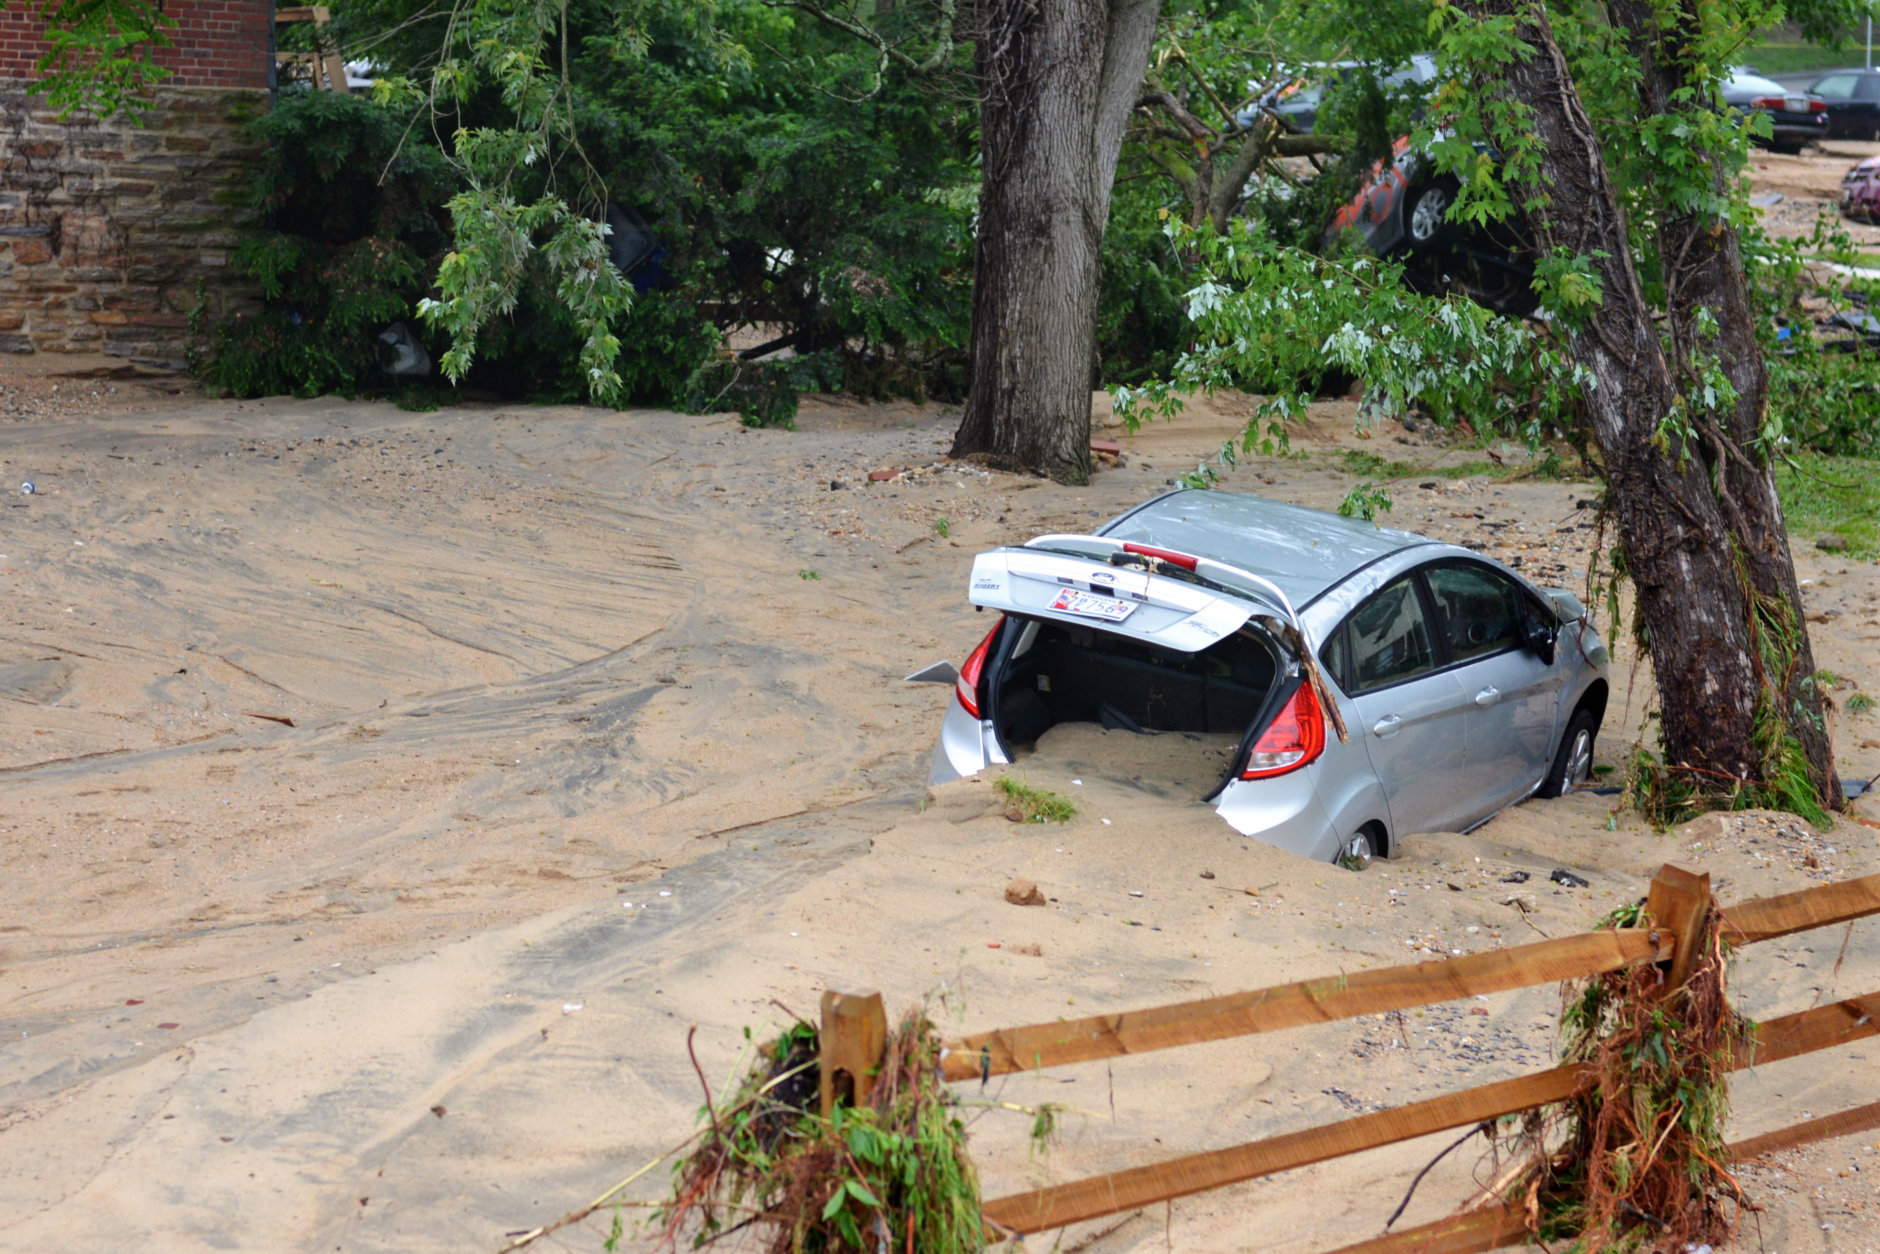 A car that was swept into the riverbank rests just off Main Street in flood-ravaged Ellicott City, Md., Monday, May 28, 2018. Howard County will reopen the closed stretch of a road leading to Main Street on Friday. (AP Photo/David McFadden)